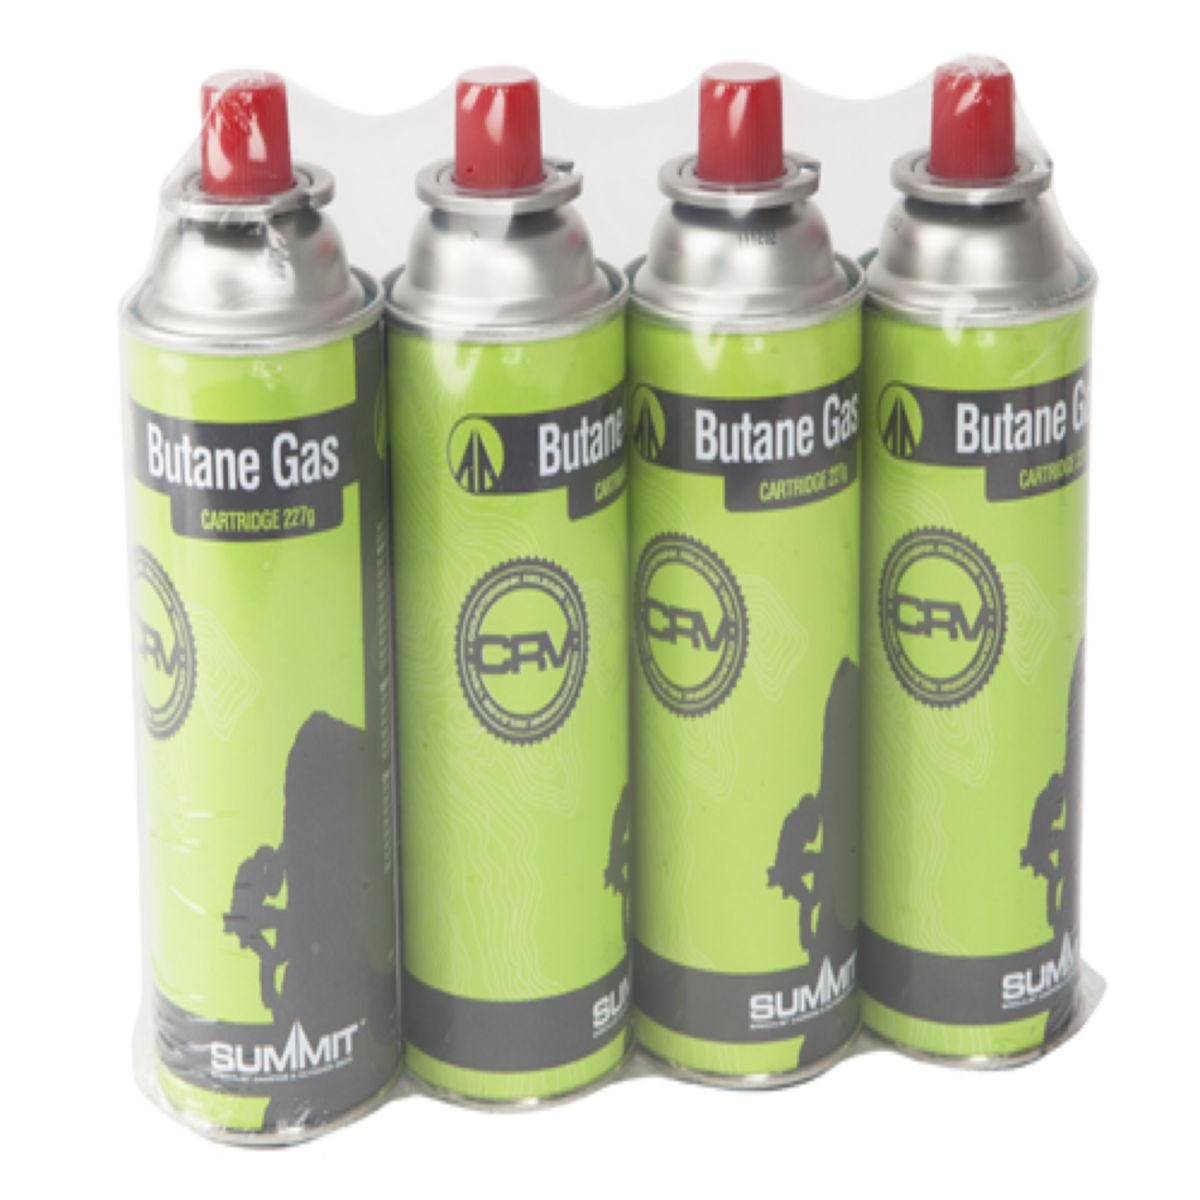 Summit Butane Gas Canisters – 4 Pack